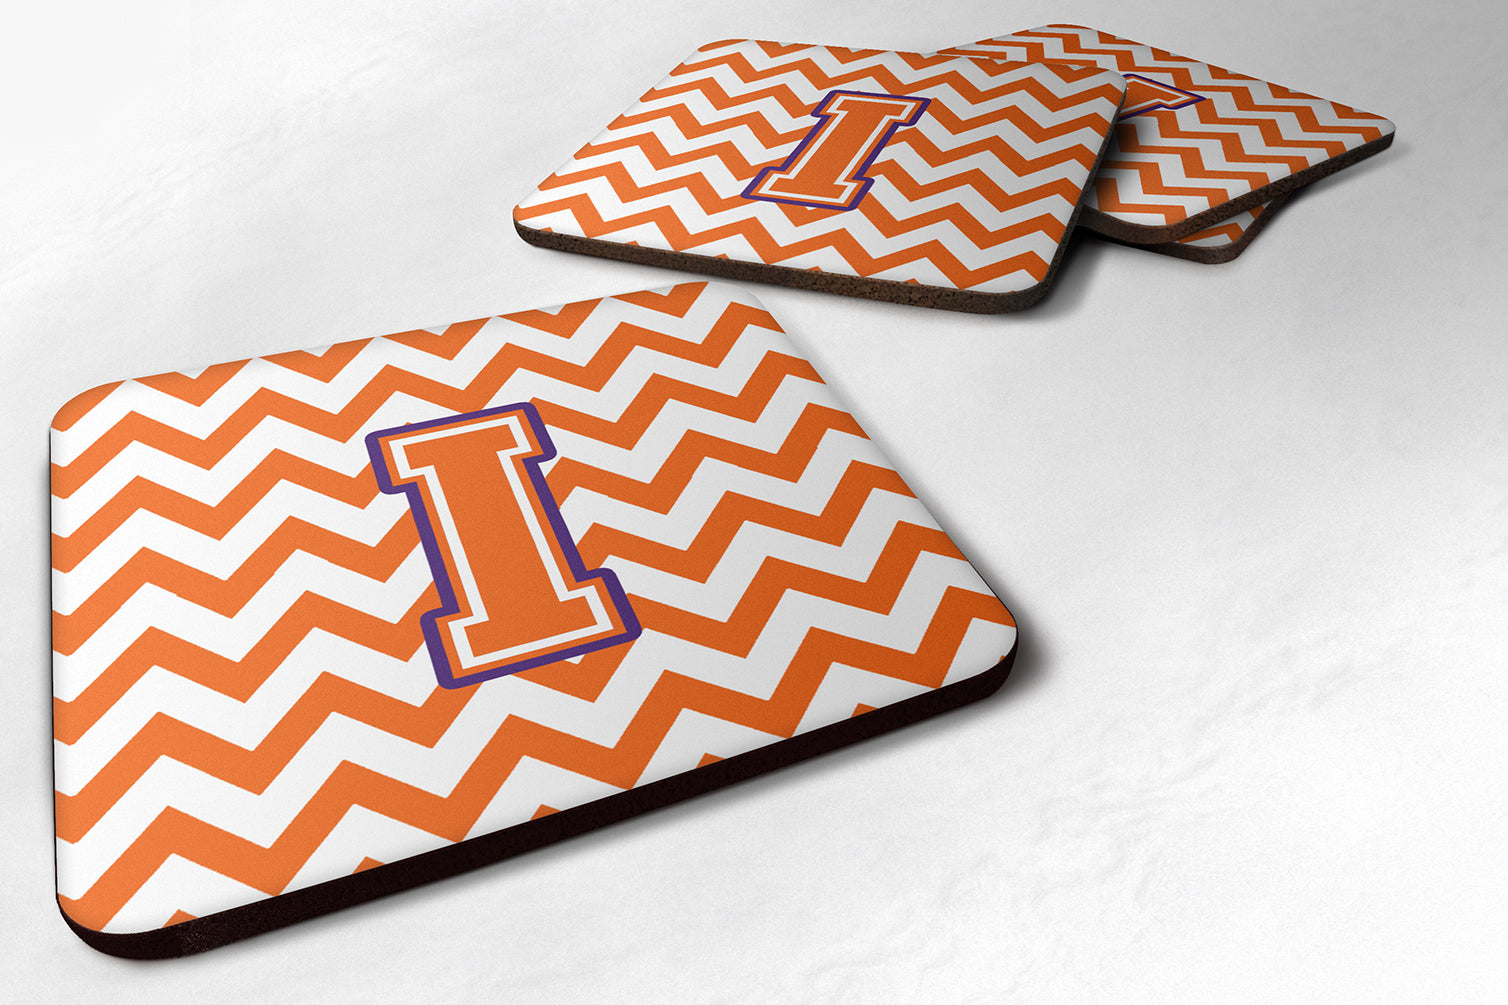 Letter I Chevron Orange and Regalia Foam Coaster Set of 4 CJ1062-IFC by Caroline's Treasures